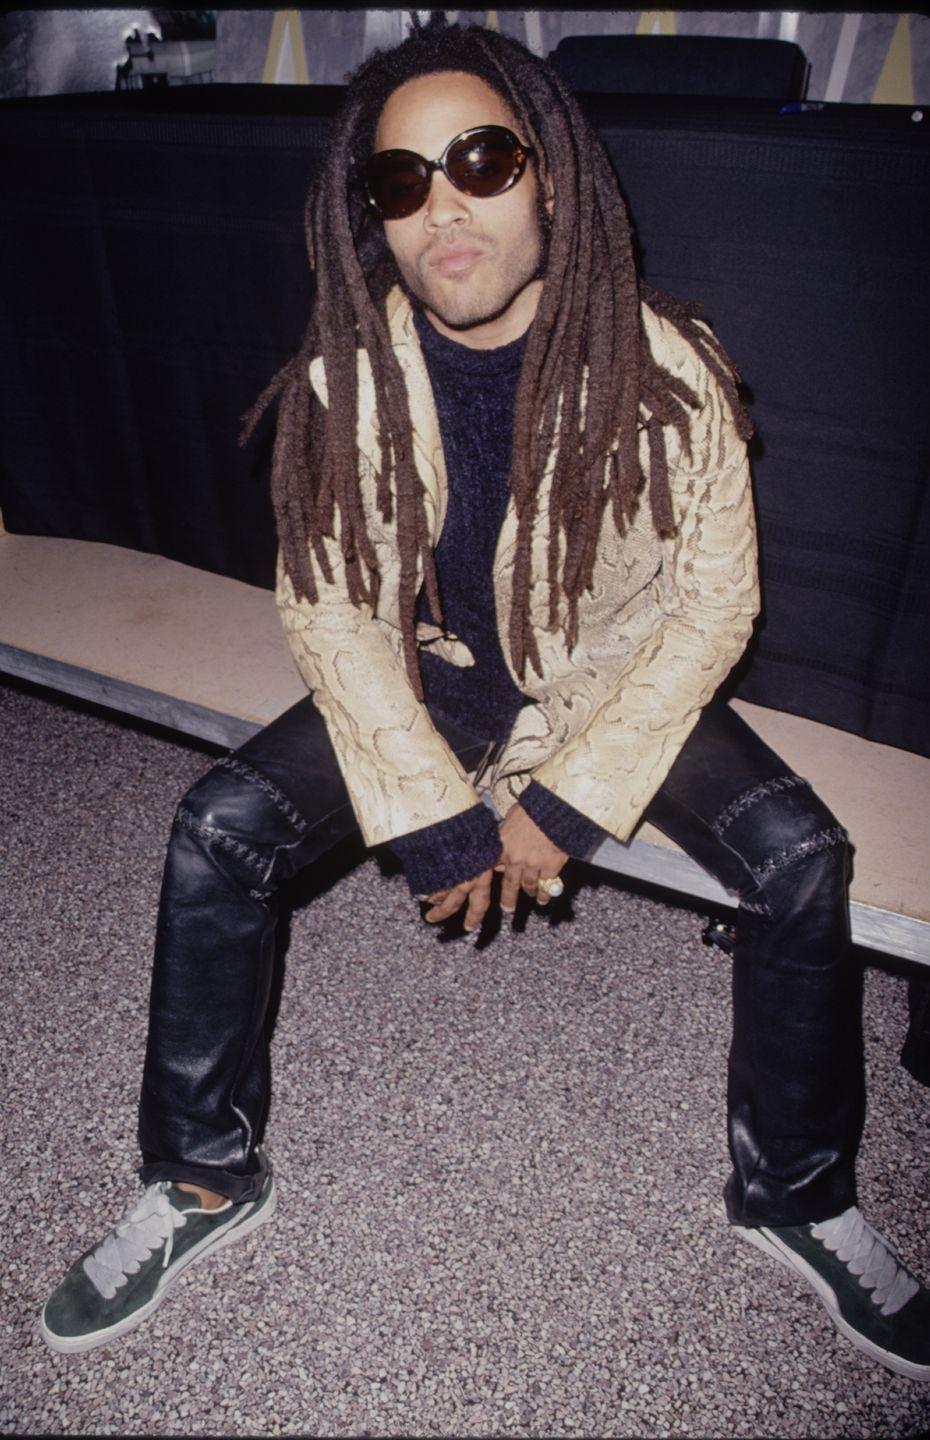 <p>In recent years, Lenny Kravitz has opted for a shorter look. But back in the 1990s, the singer wore his hair in dreadlocks that came down to his torso. </p>